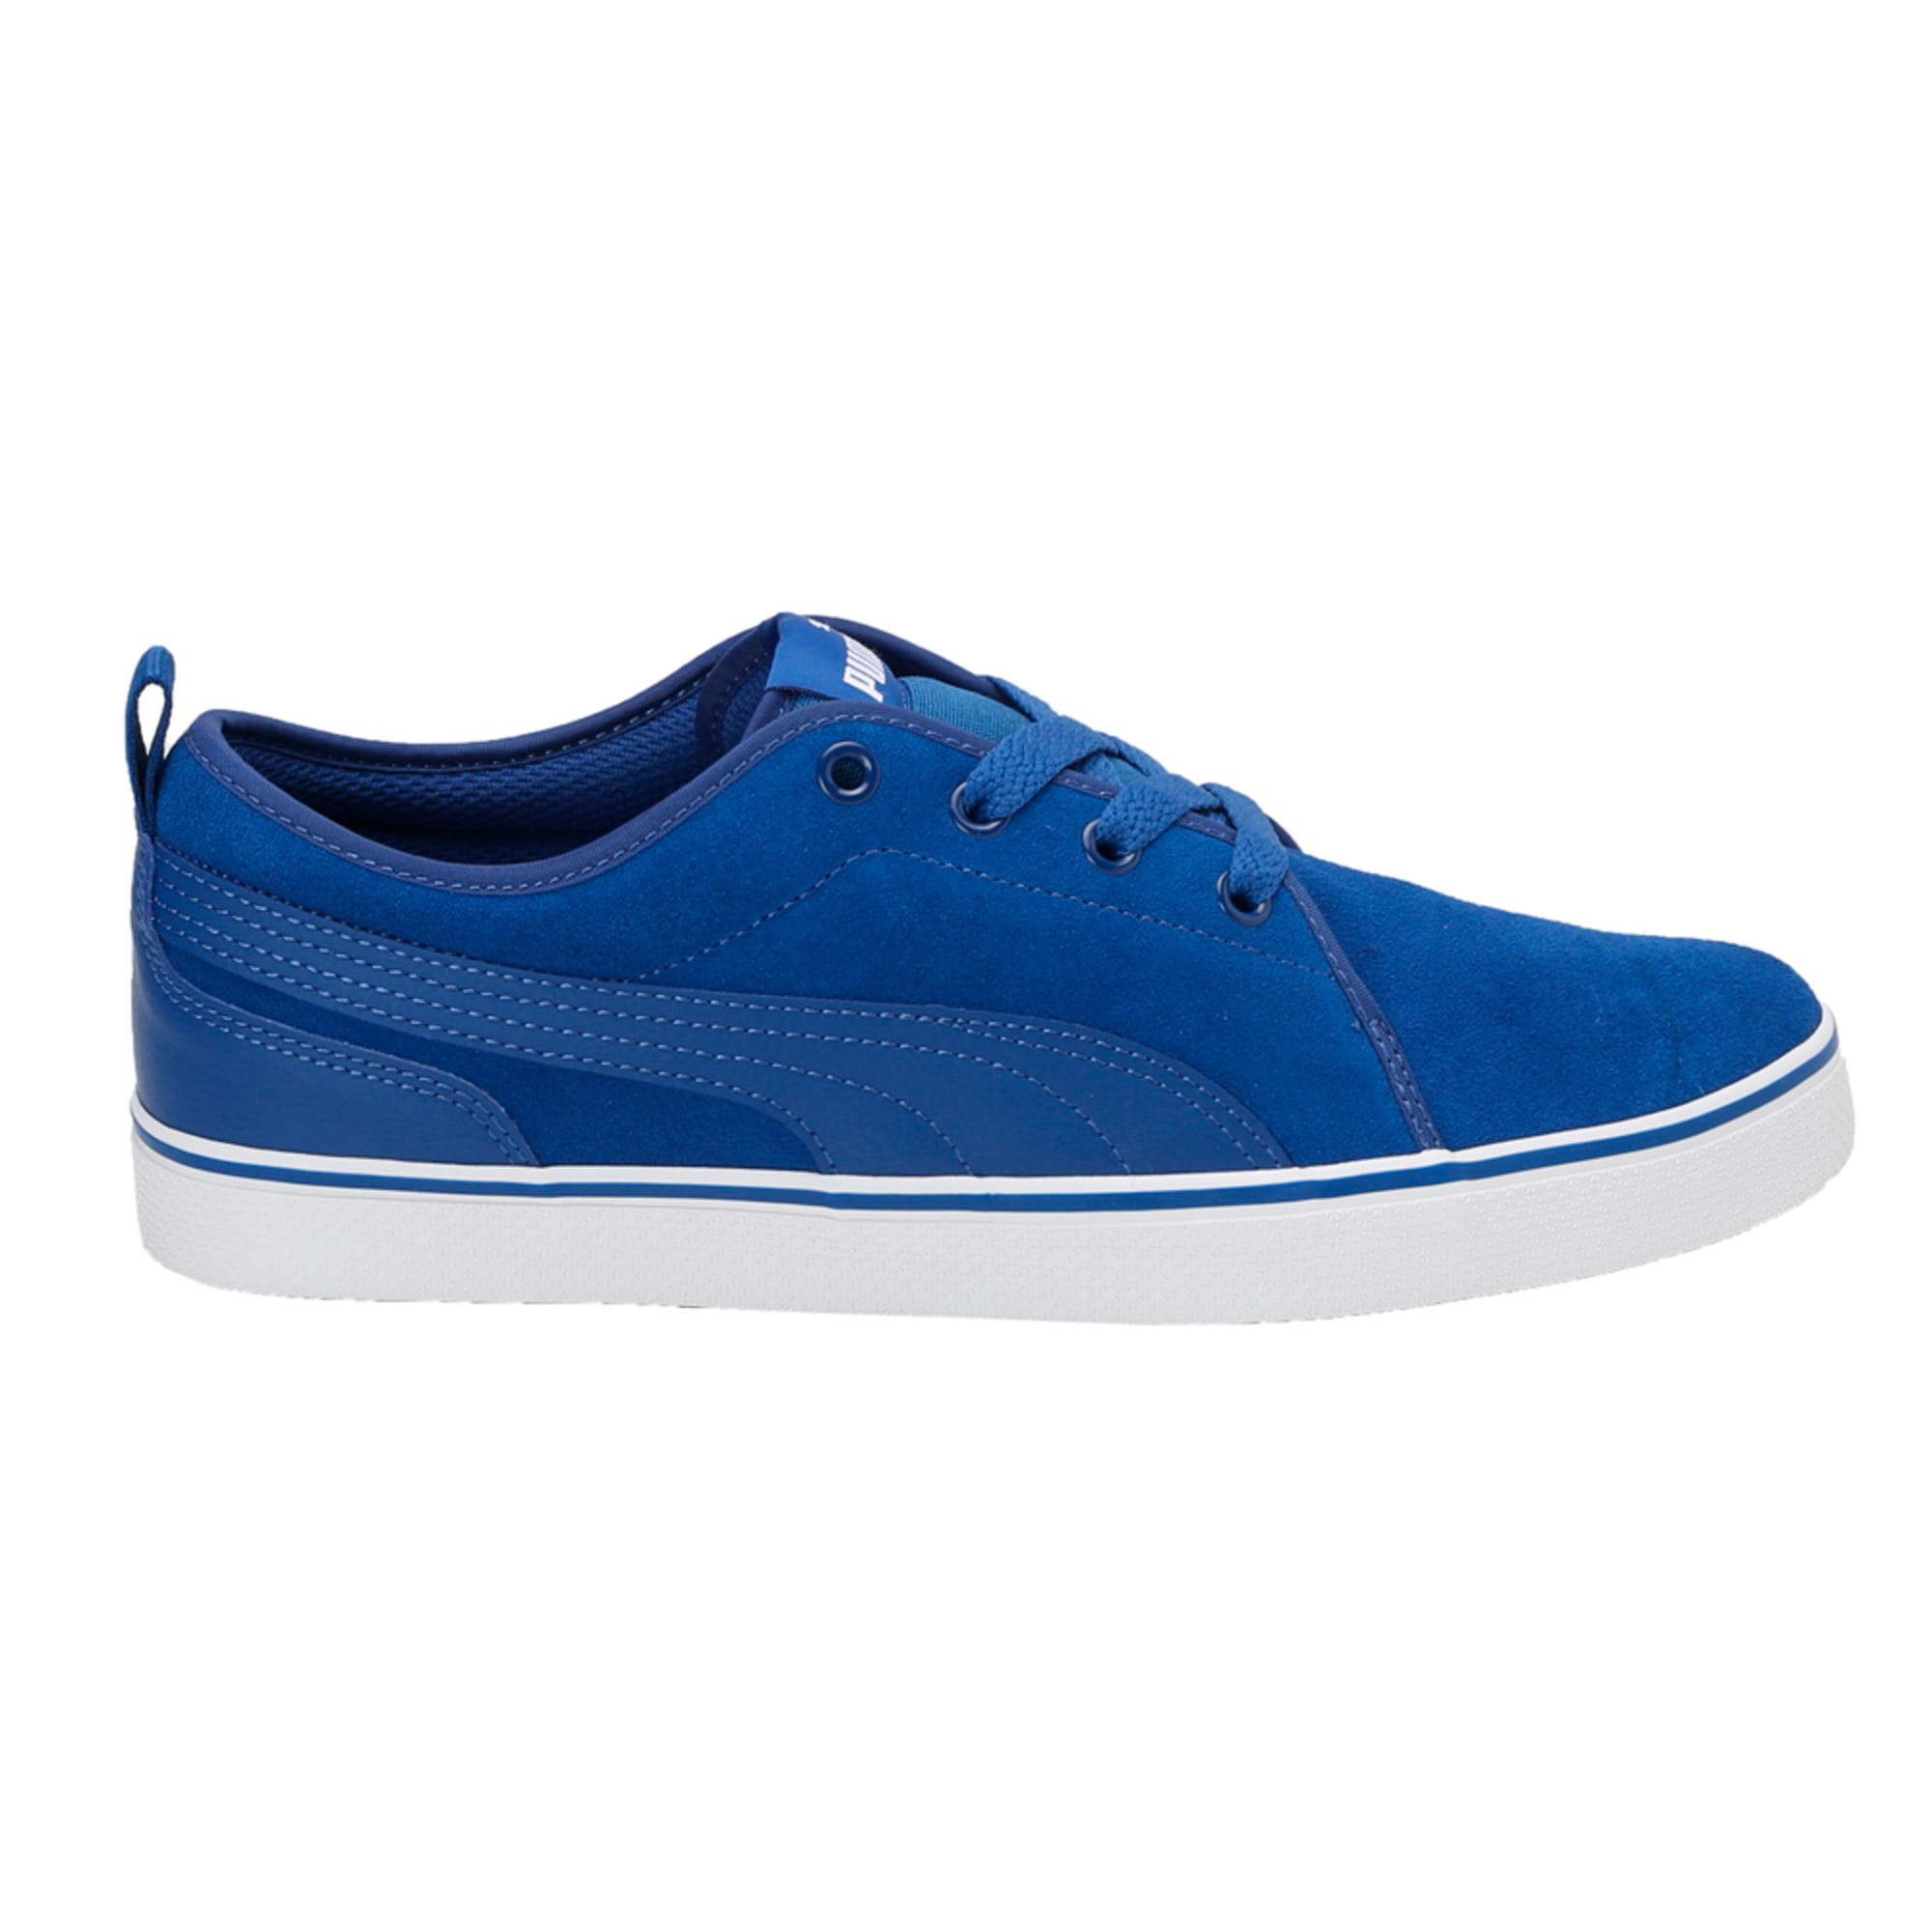 Thumbnail 3 of S Street Vulc, TRUE BLUE-TRUE BLUE, medium-IND